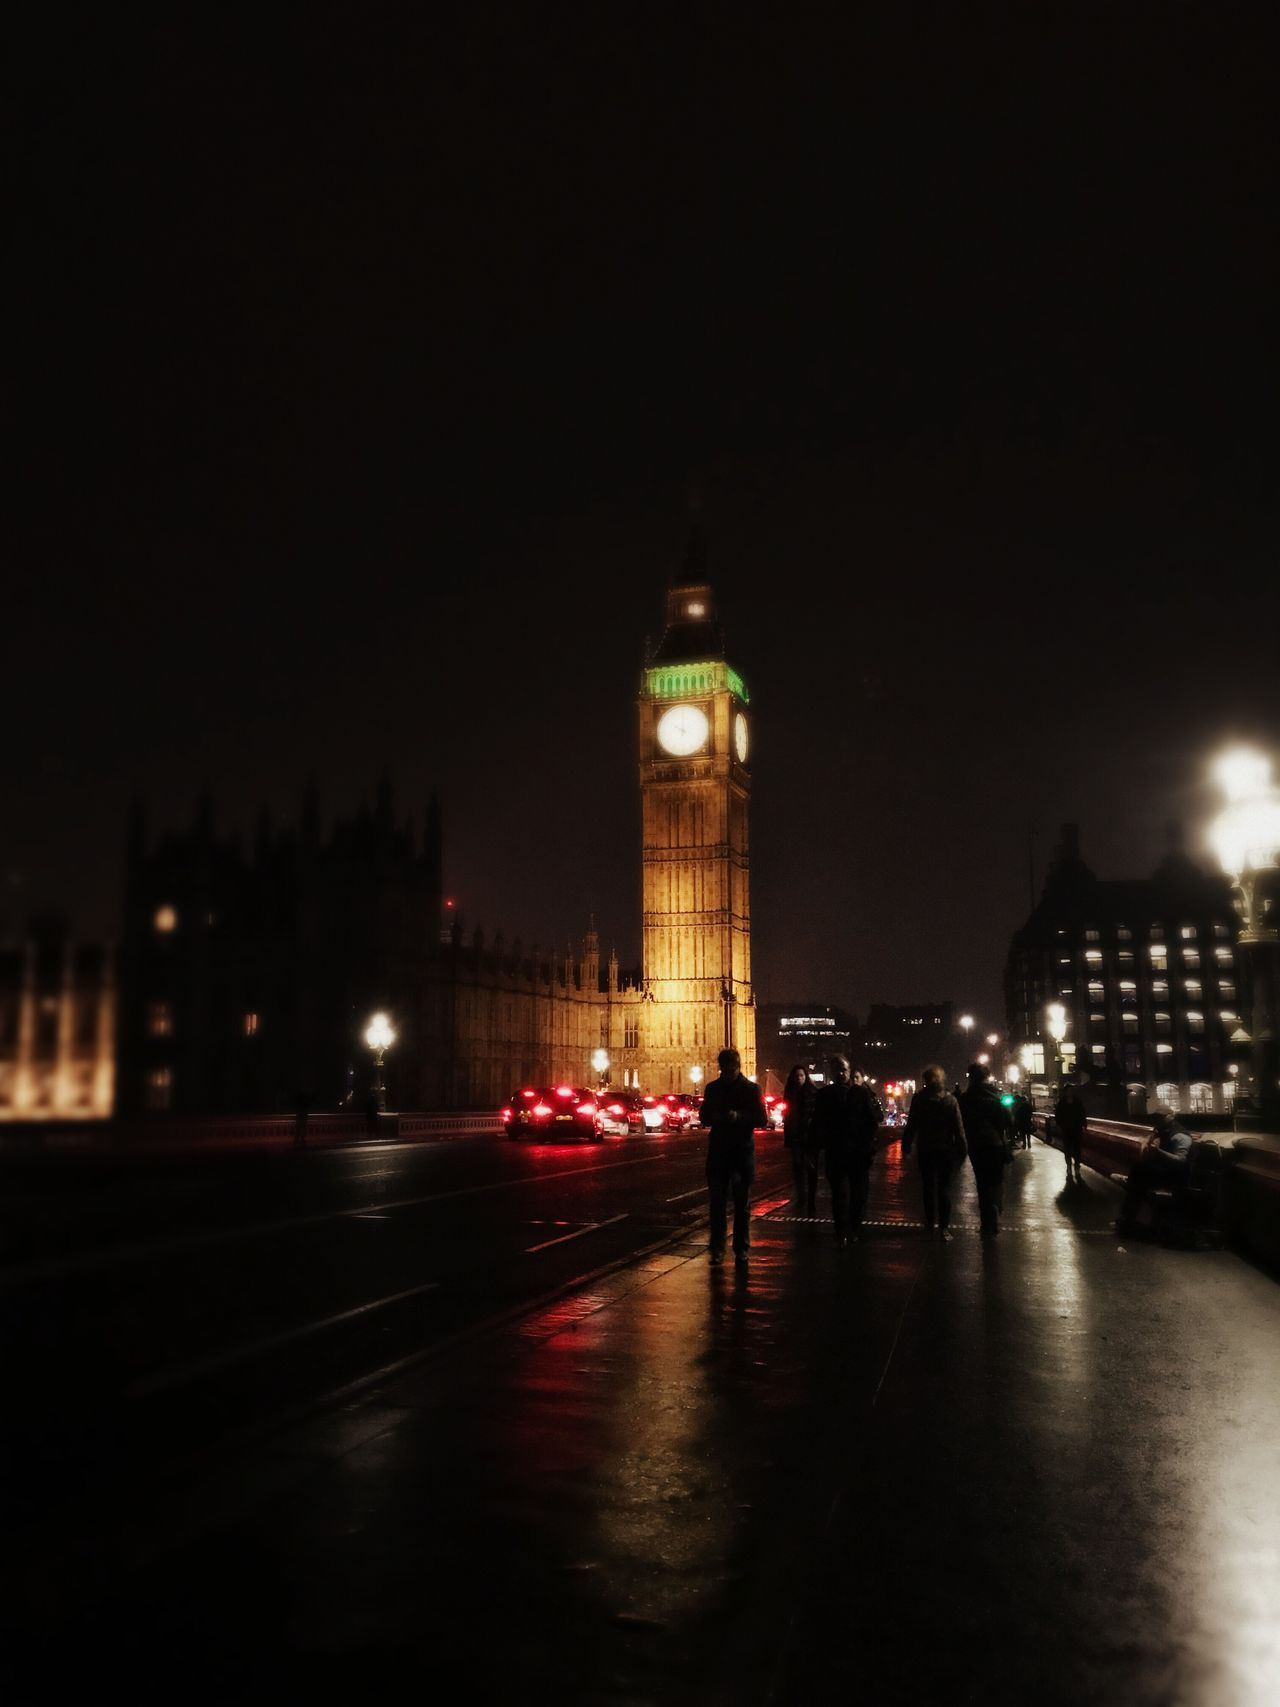 Night Architecture Illuminated Travel Destinations Travel Transportation Tourism City Road Clock Tower Car Built Structure London Big Ben Land Vehicle First Eyeem Photo